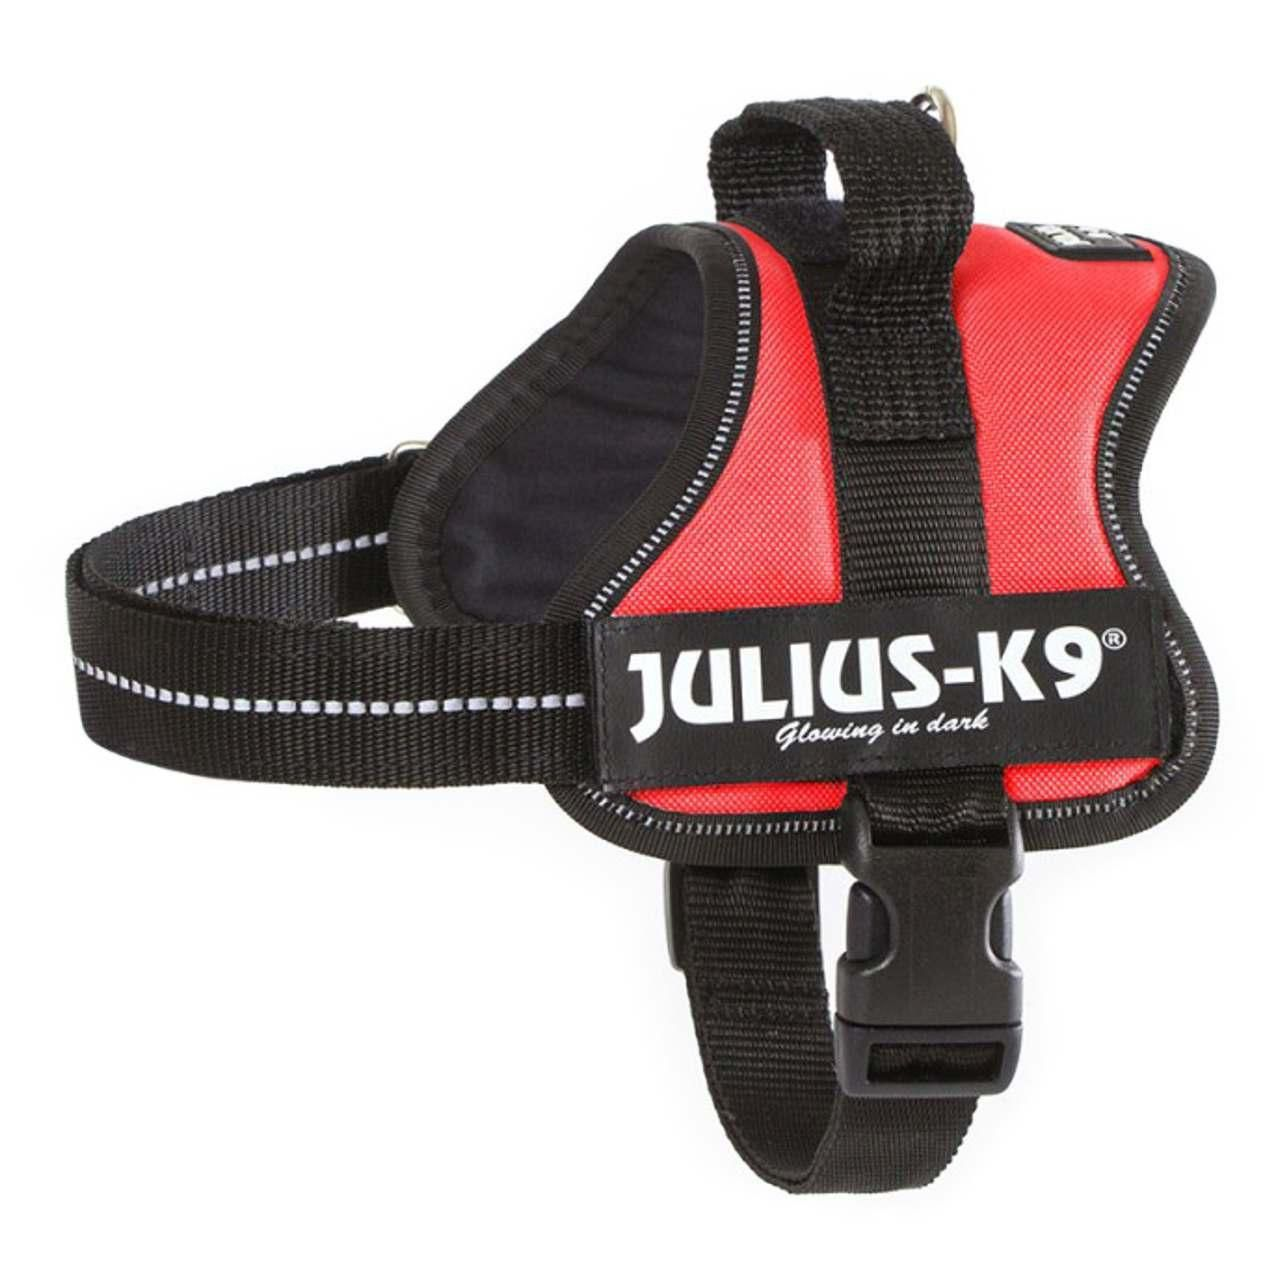 Need A New Dog Harness With All The Bells And Whistles Julius K9